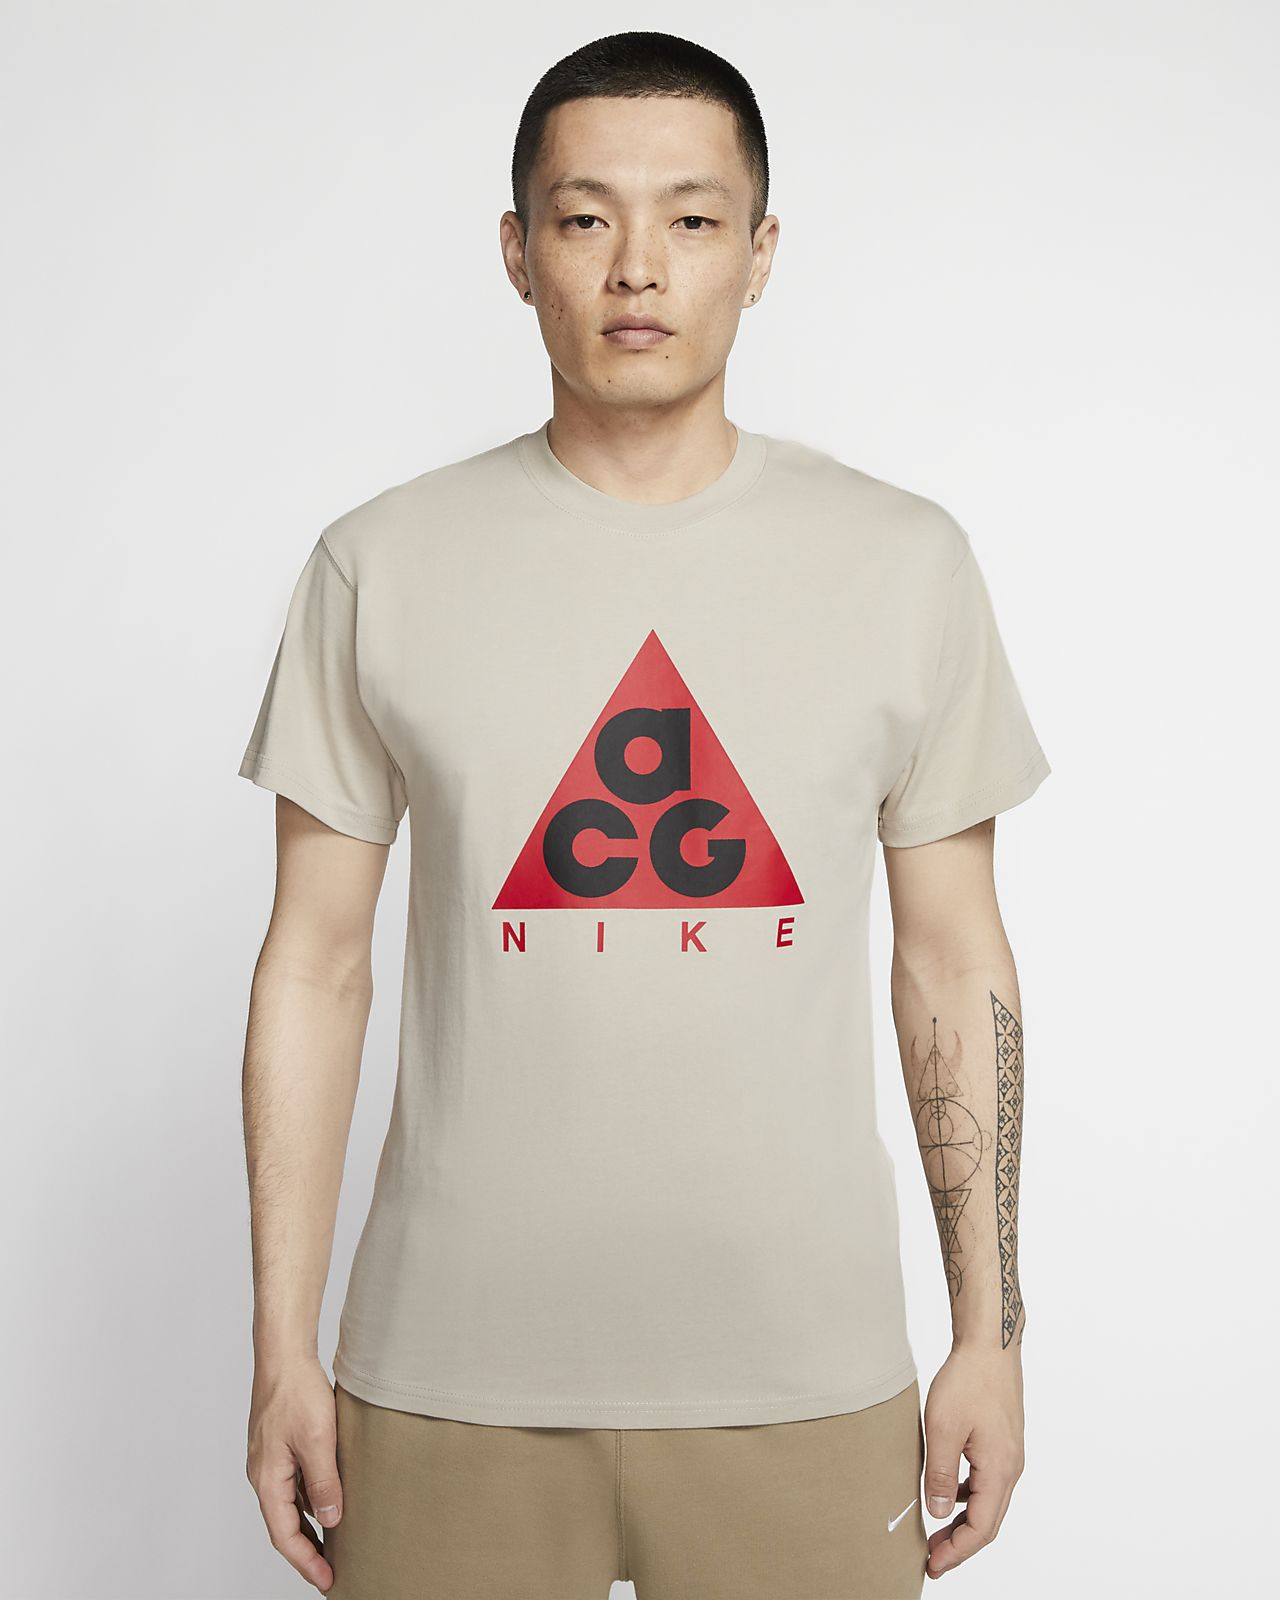 Nike ACG Men's Graphic T-Shirt